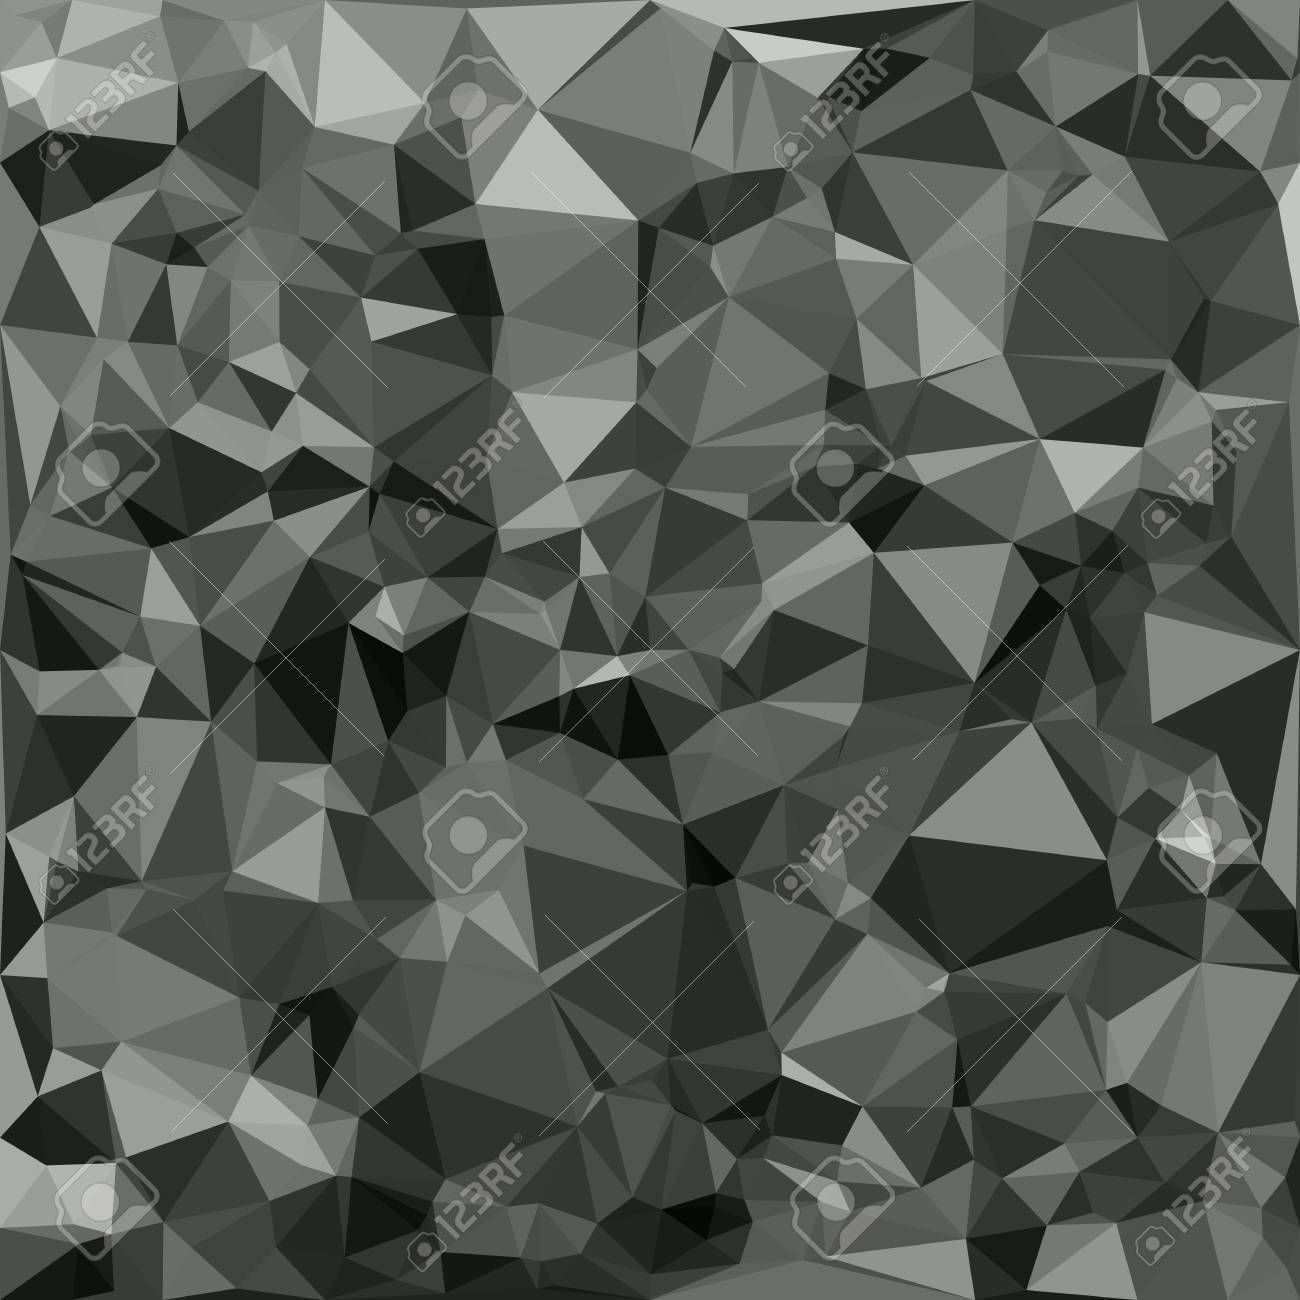 Black Polygonal Mosaic Background Creative Design Templates Affiliate Mosaic Polygonal Black Background Templat In 2020 With Images Abstract Artwork Artwork Abstract